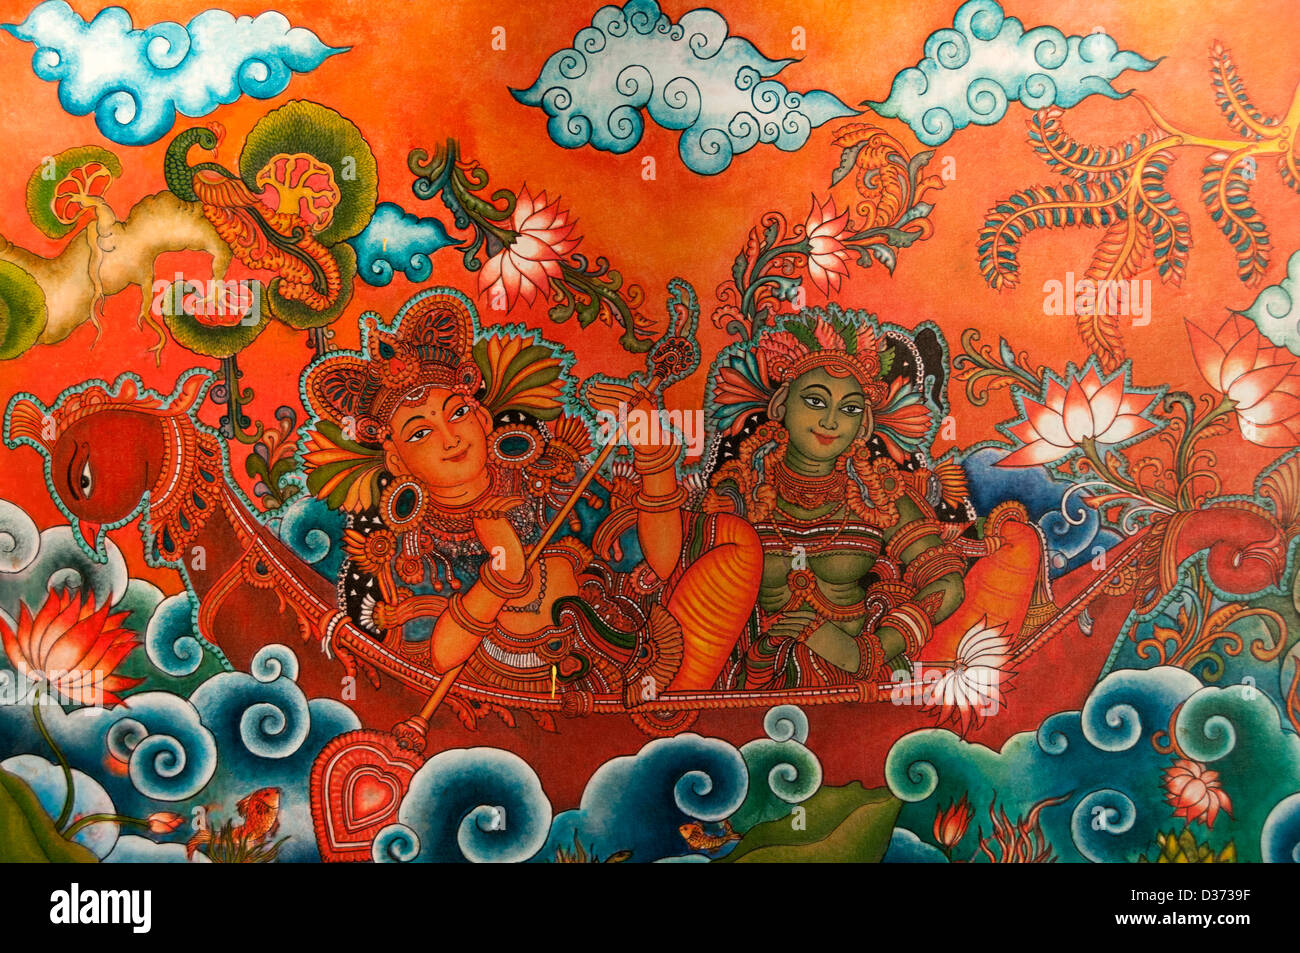 Mural Painting depicting Indian Gods - Stock Image